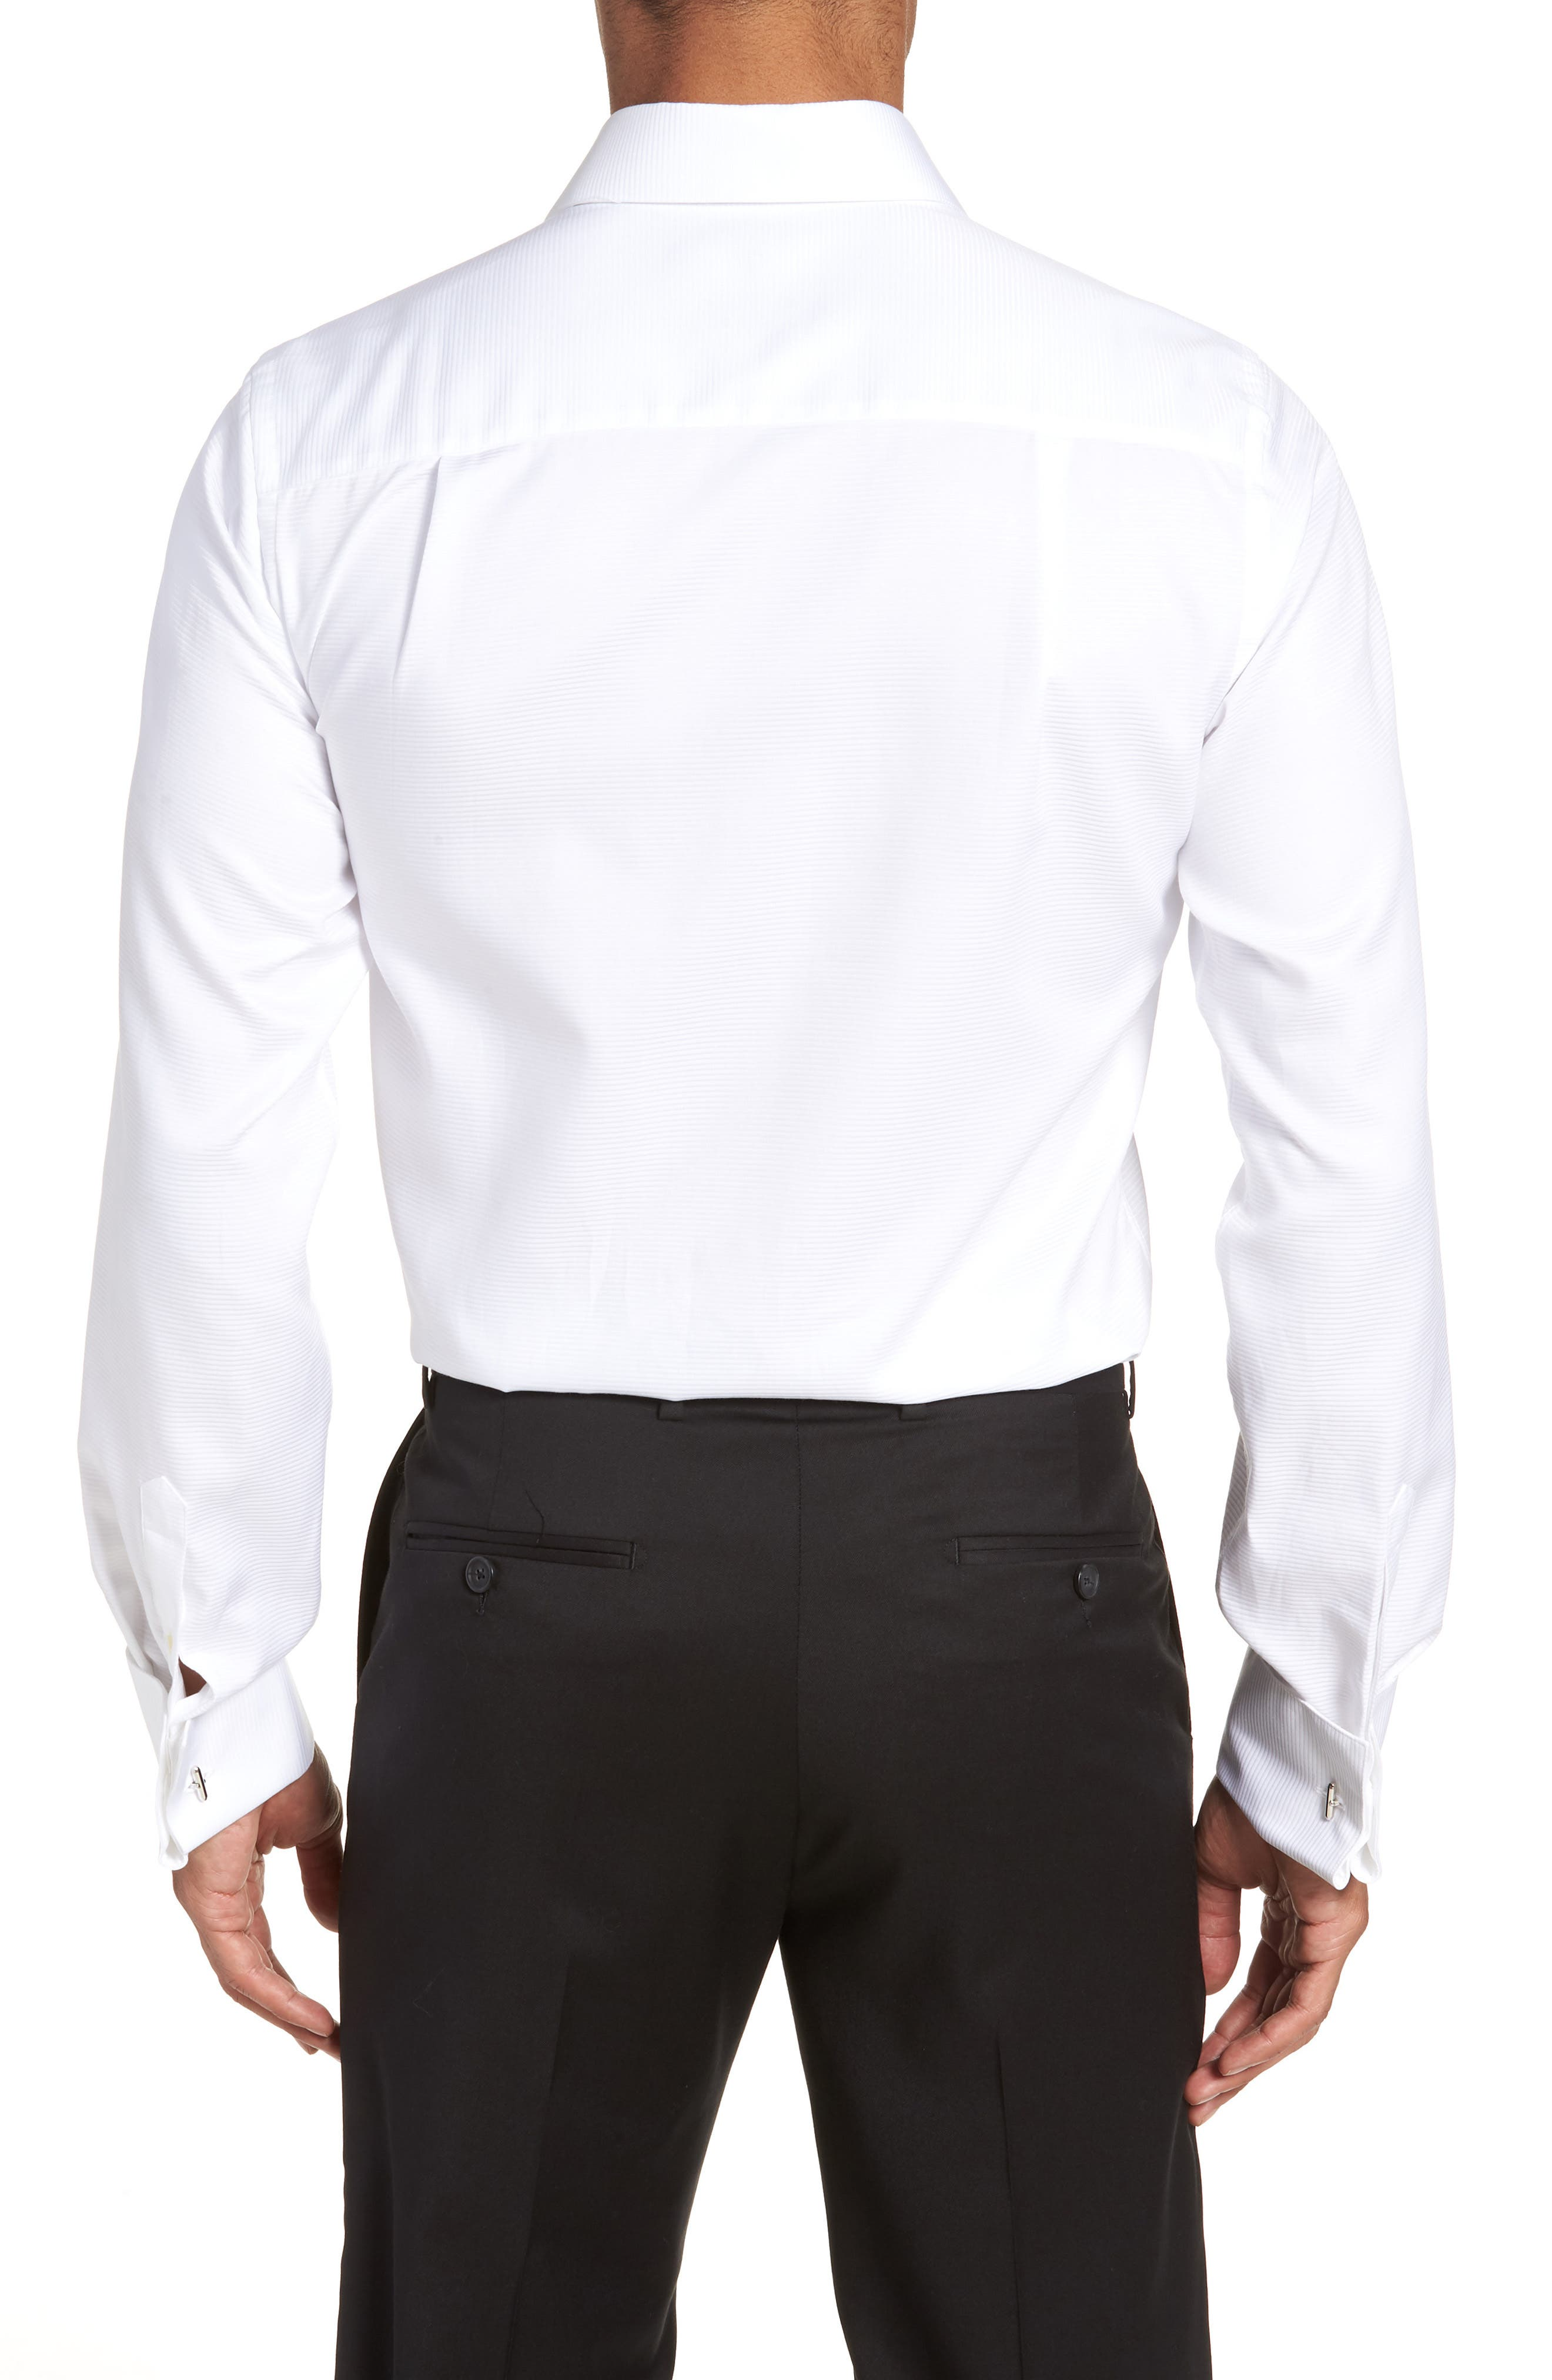 Trim Fit Twill French Cuff Tuxedo Shirt,                             Alternate thumbnail 3, color,                             SOLID WHITE